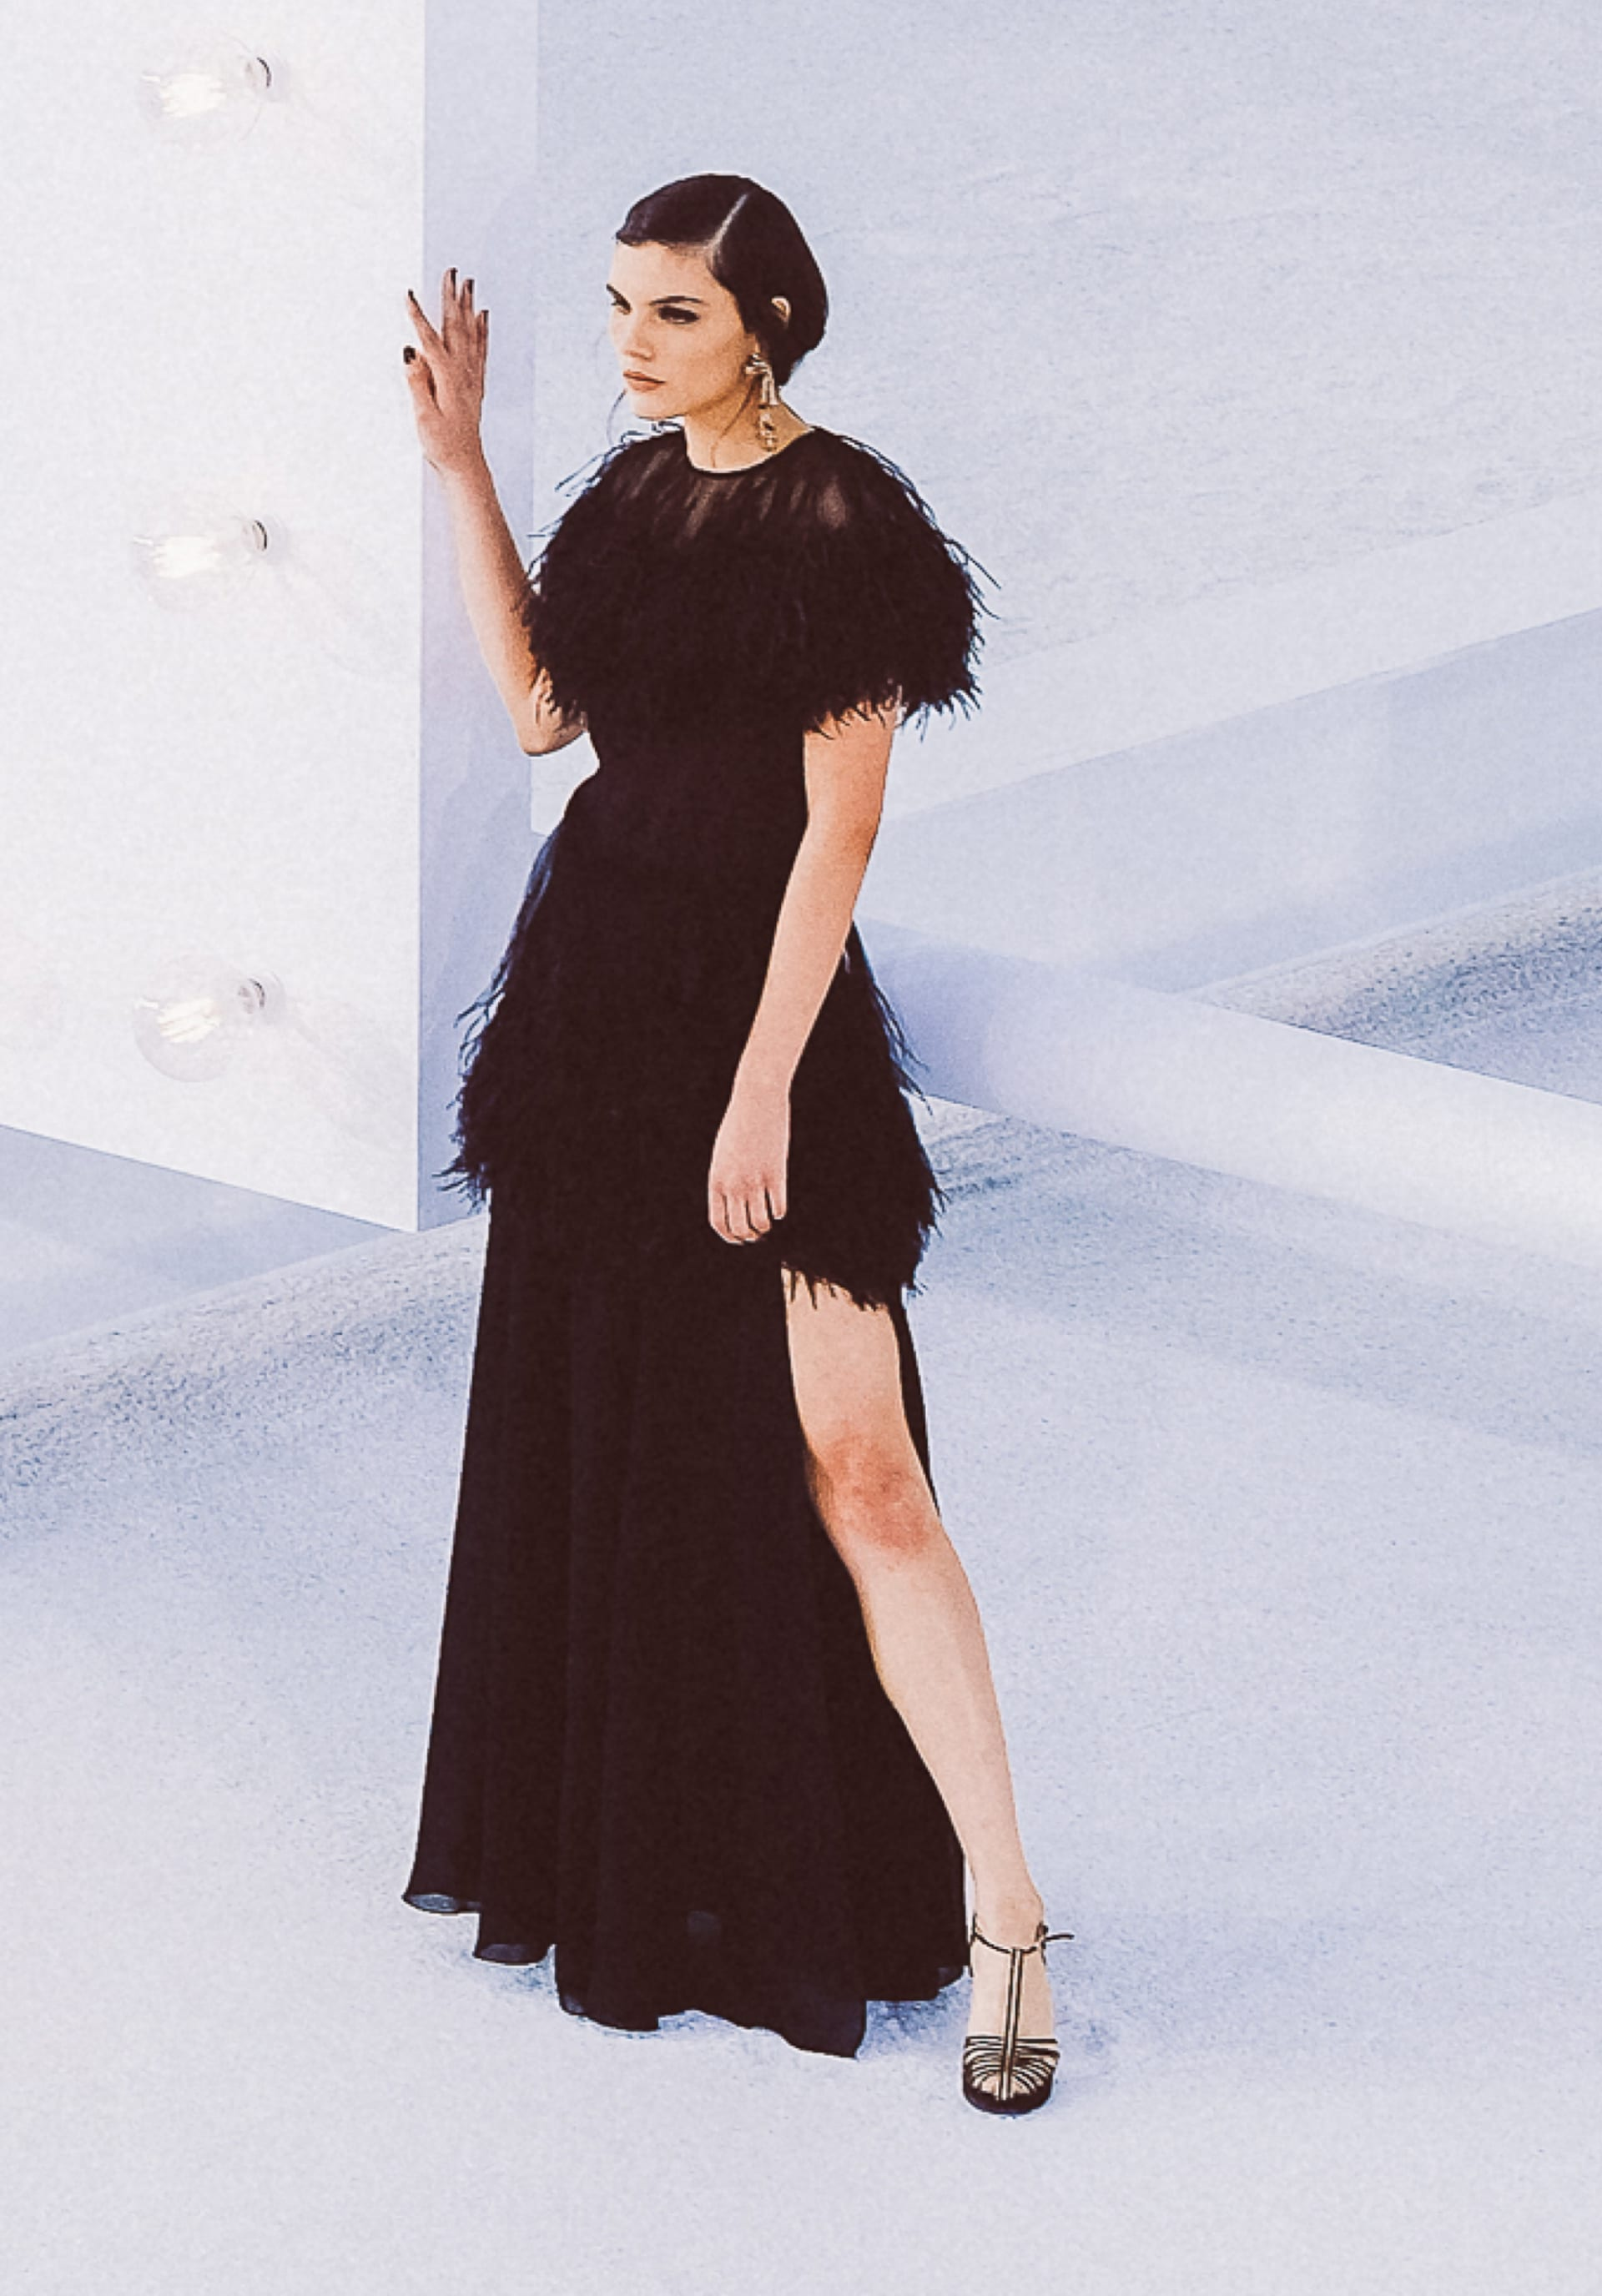 View 1 - Look65 - Spring-Summer 2021 - see full sized version